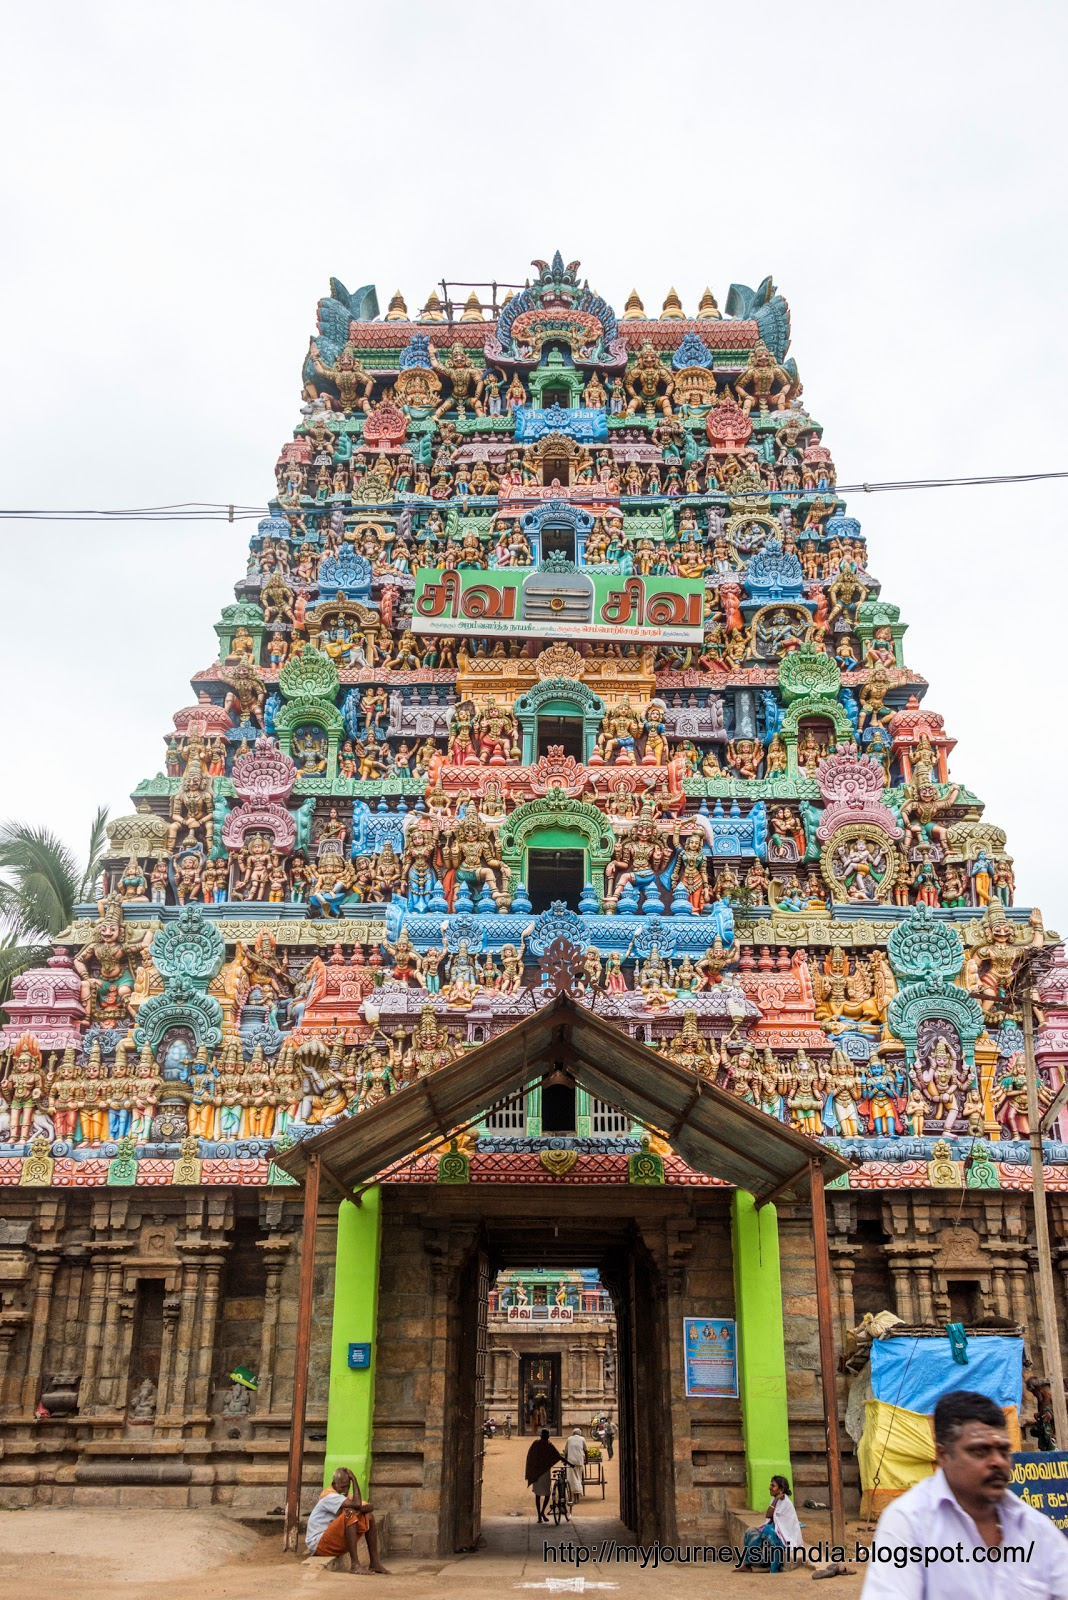 Tiruvaiyaru Aiyarappar Temple Tower